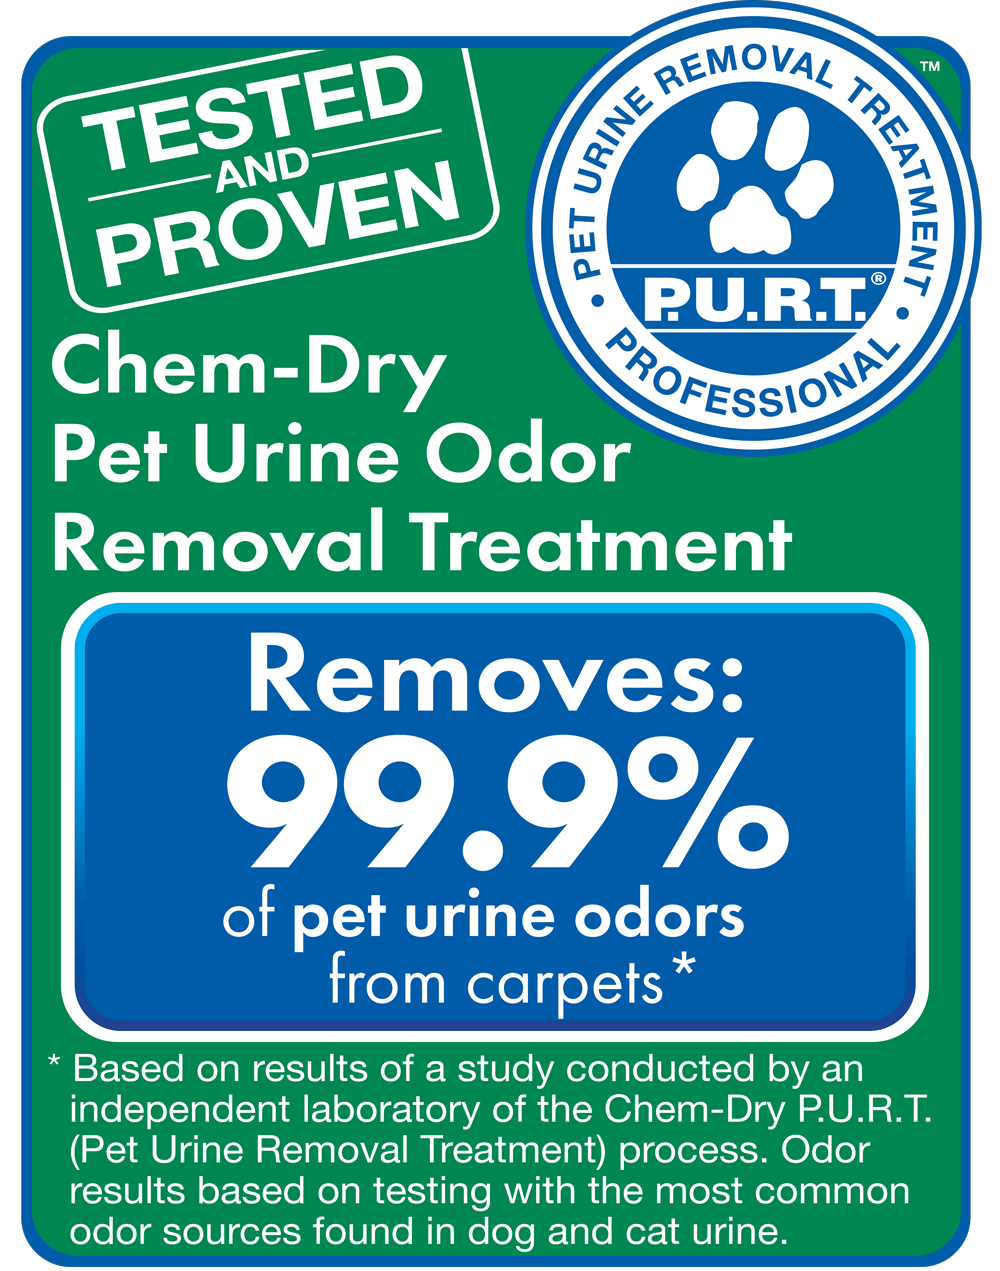 Chem dry removes bacteria from upholstery